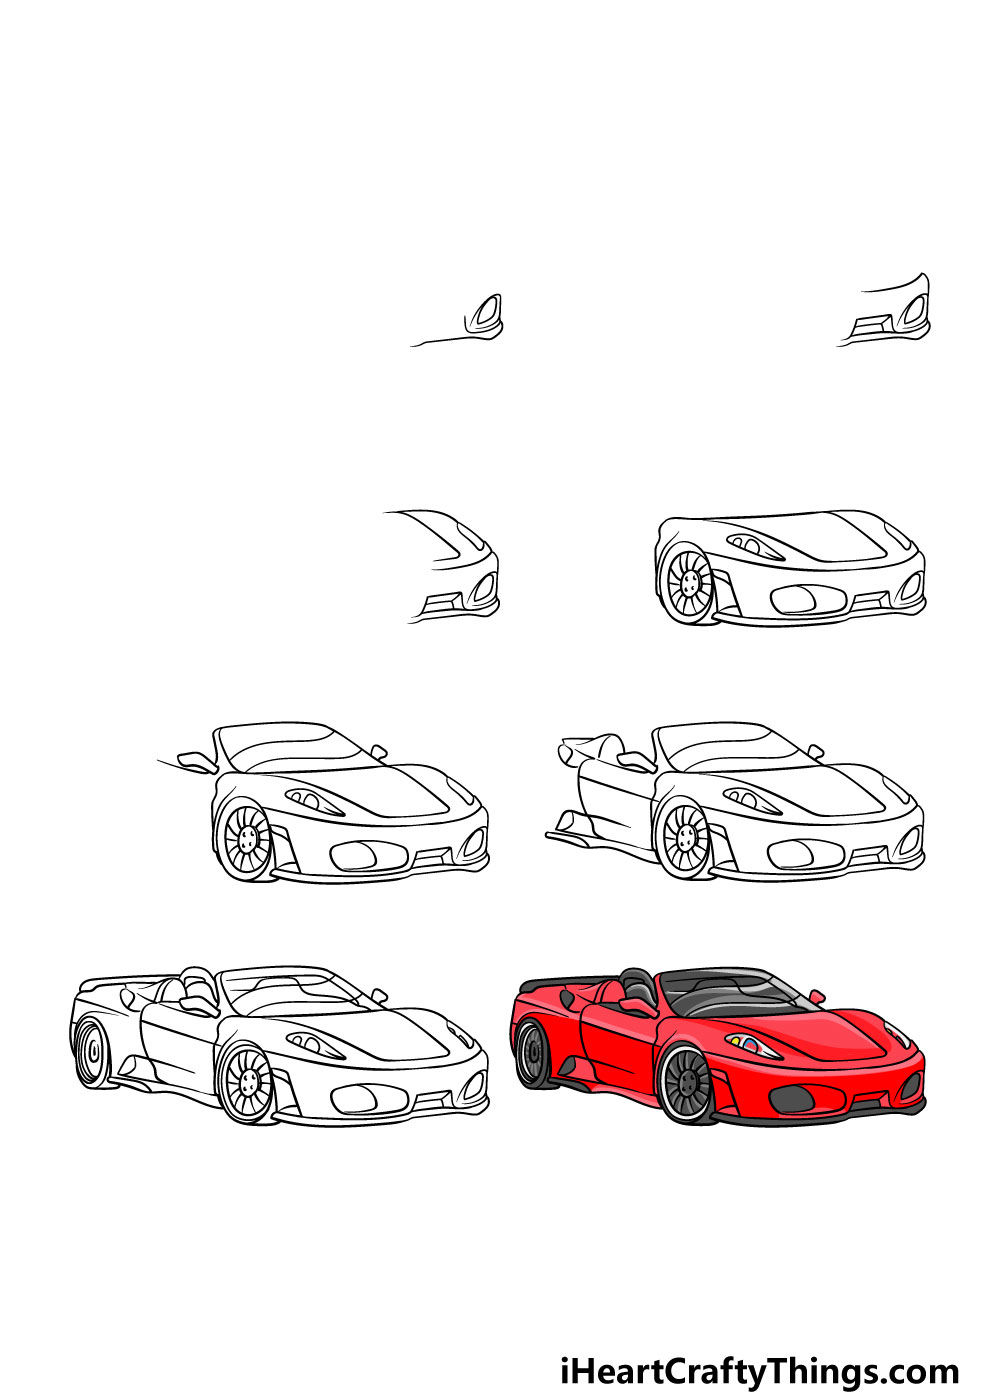 how to draw a ferrari in 8 steps